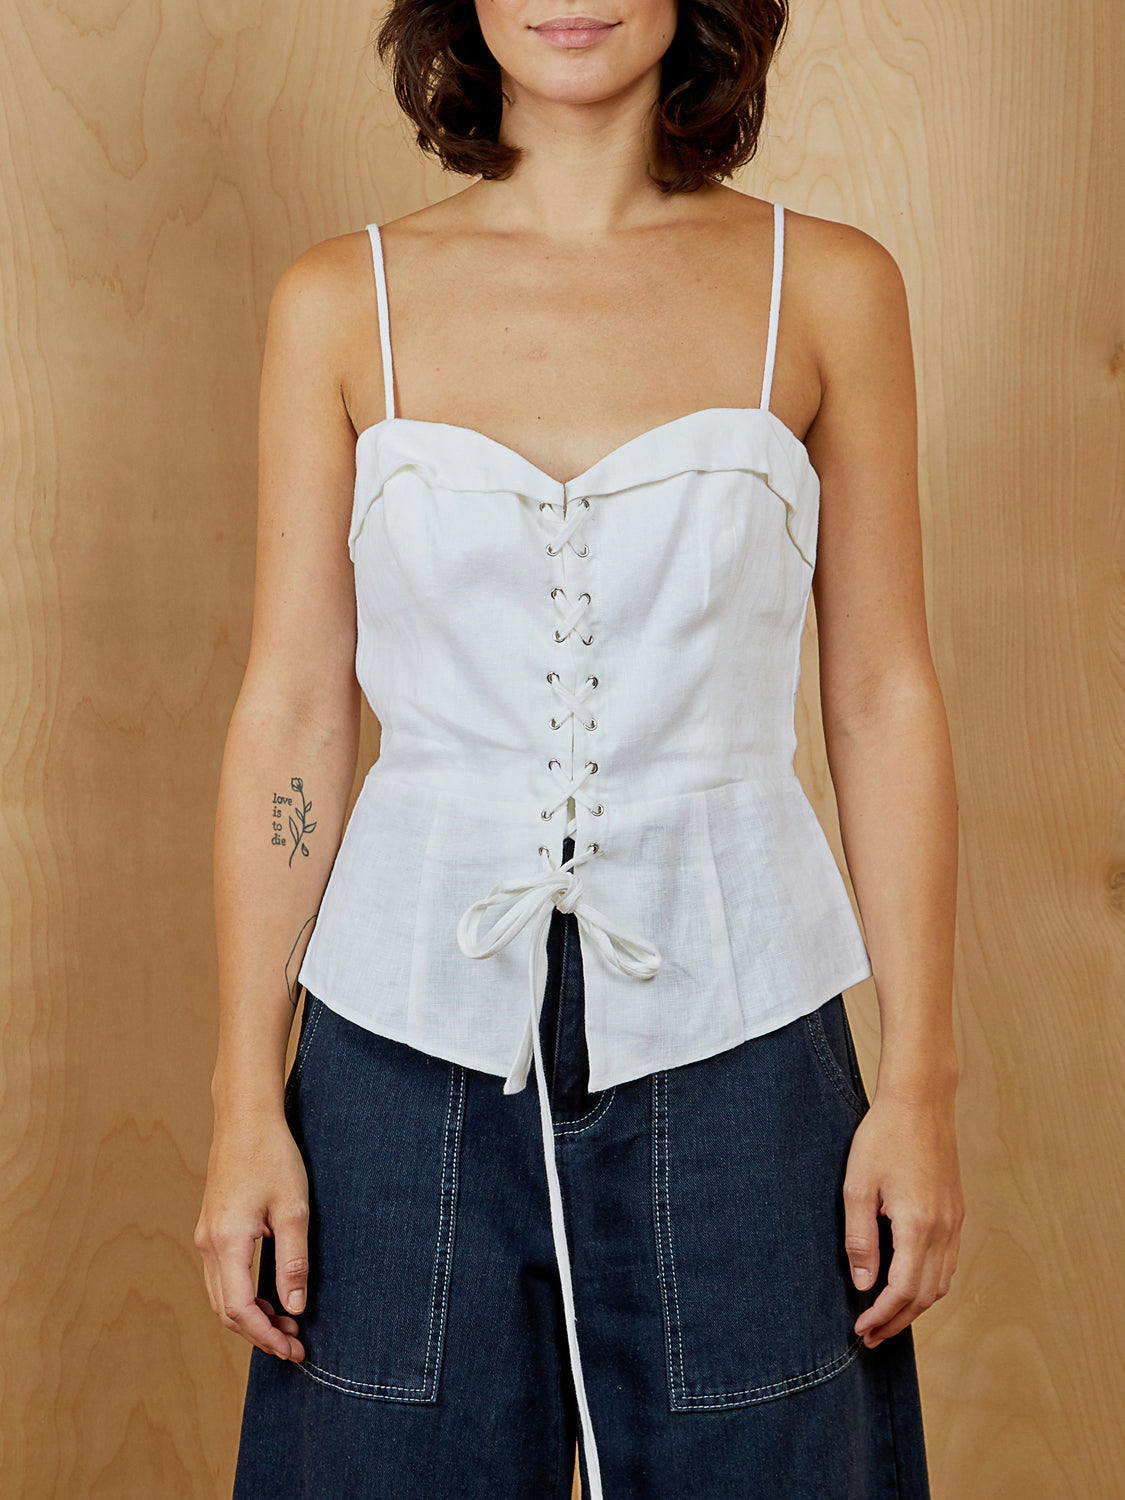 White Reformation Corset Top